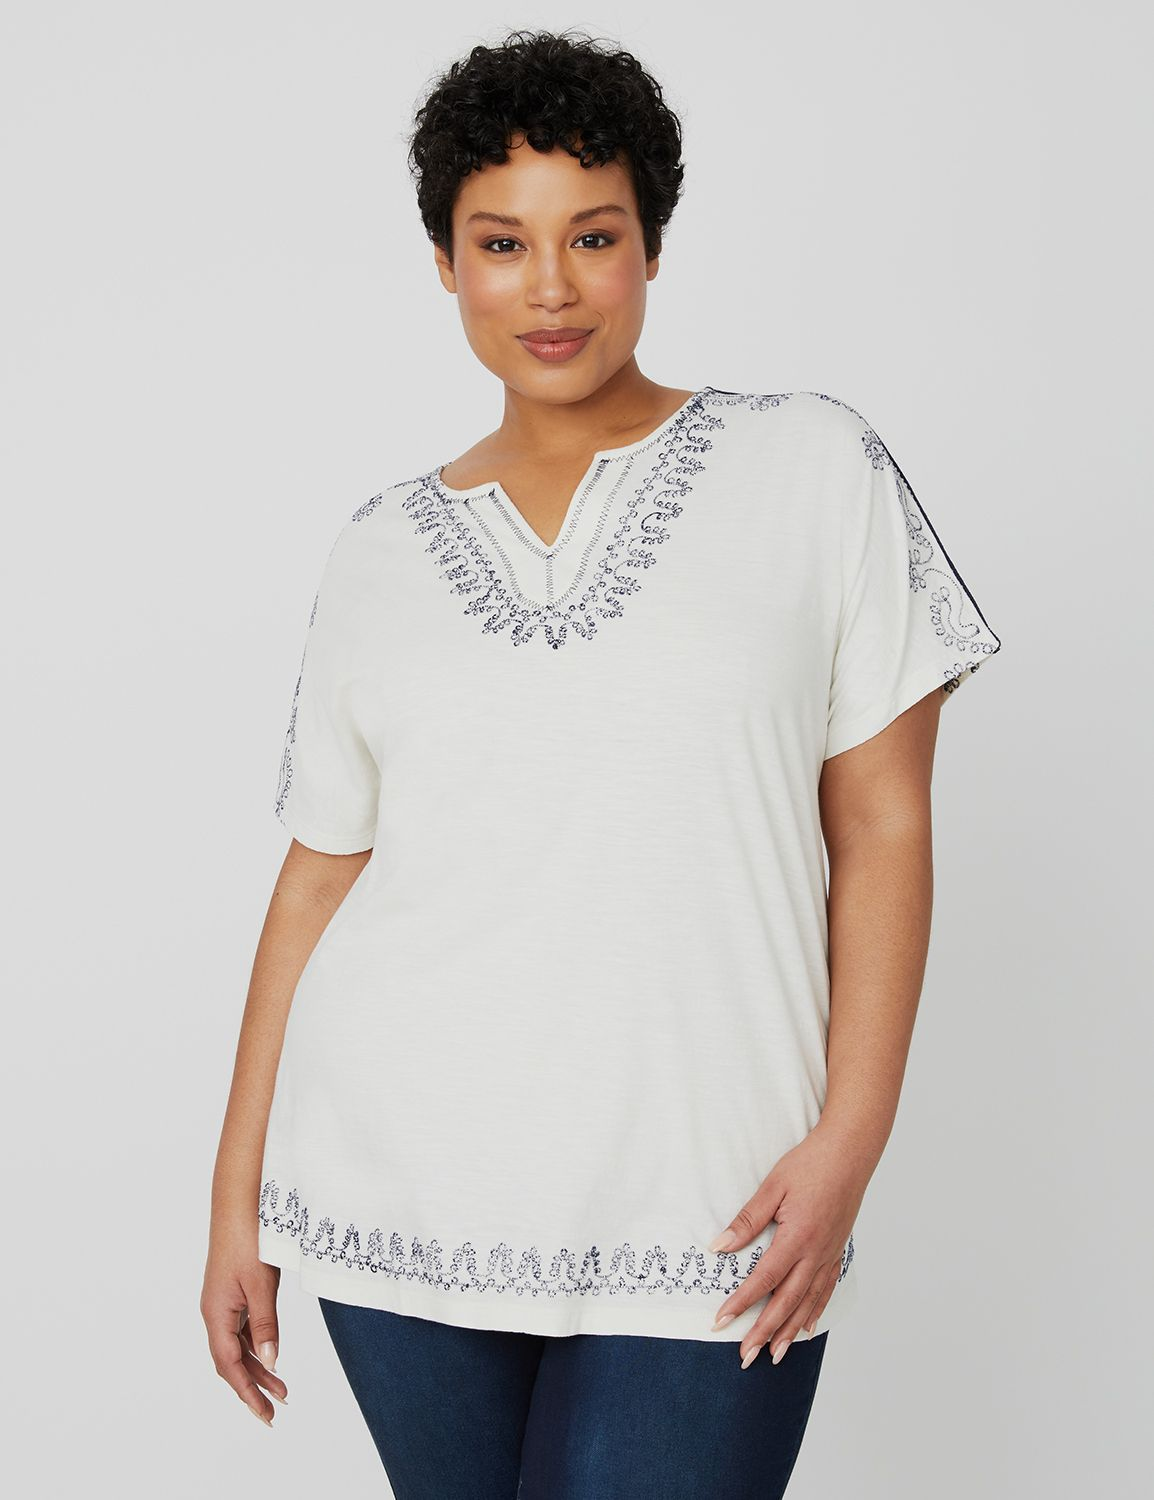 Embroidered Melody Top 1089840 EMBROIDERED SPLIT NECK MP-300099852